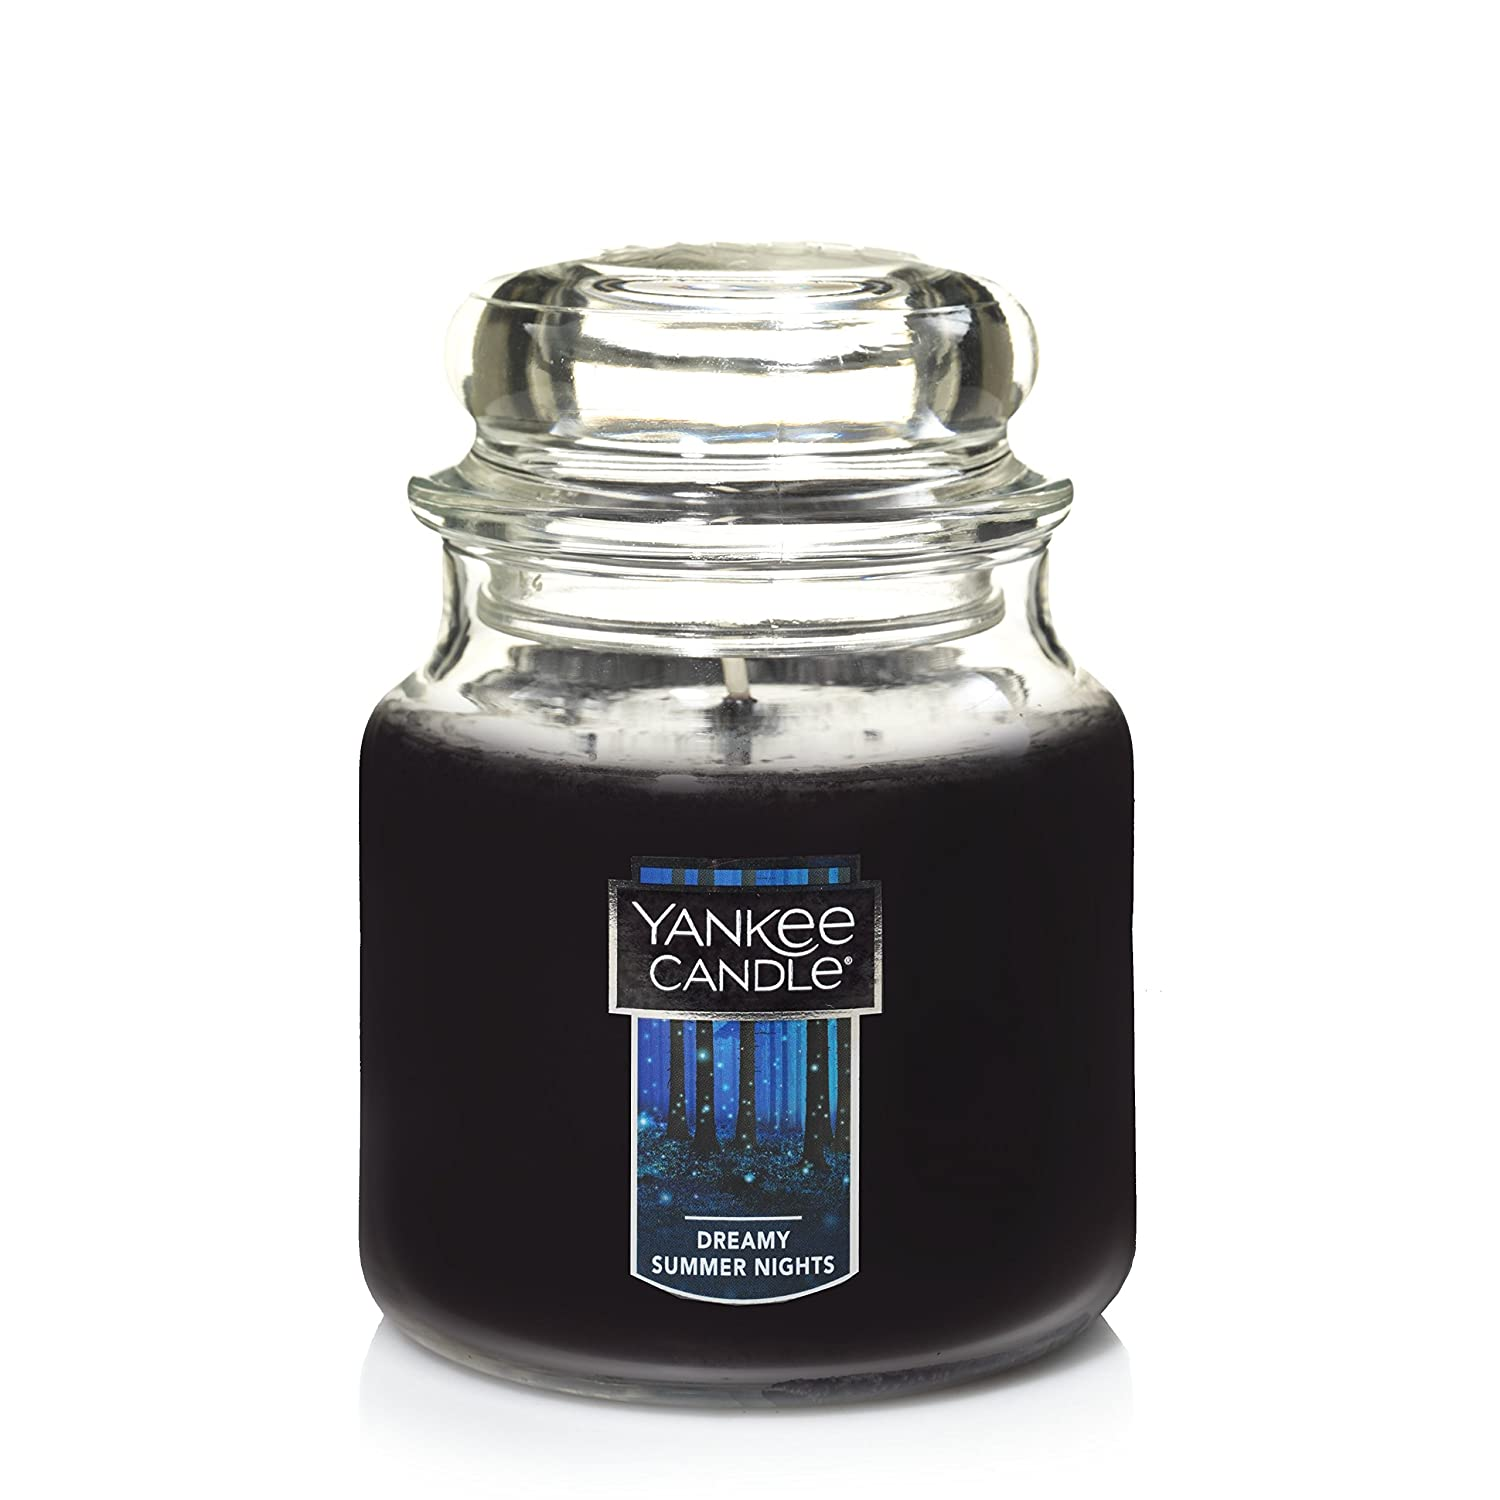 Yankee Candle Small Tumbler, Dreamy Summer Nights The Yankee Candle Company 1352145z